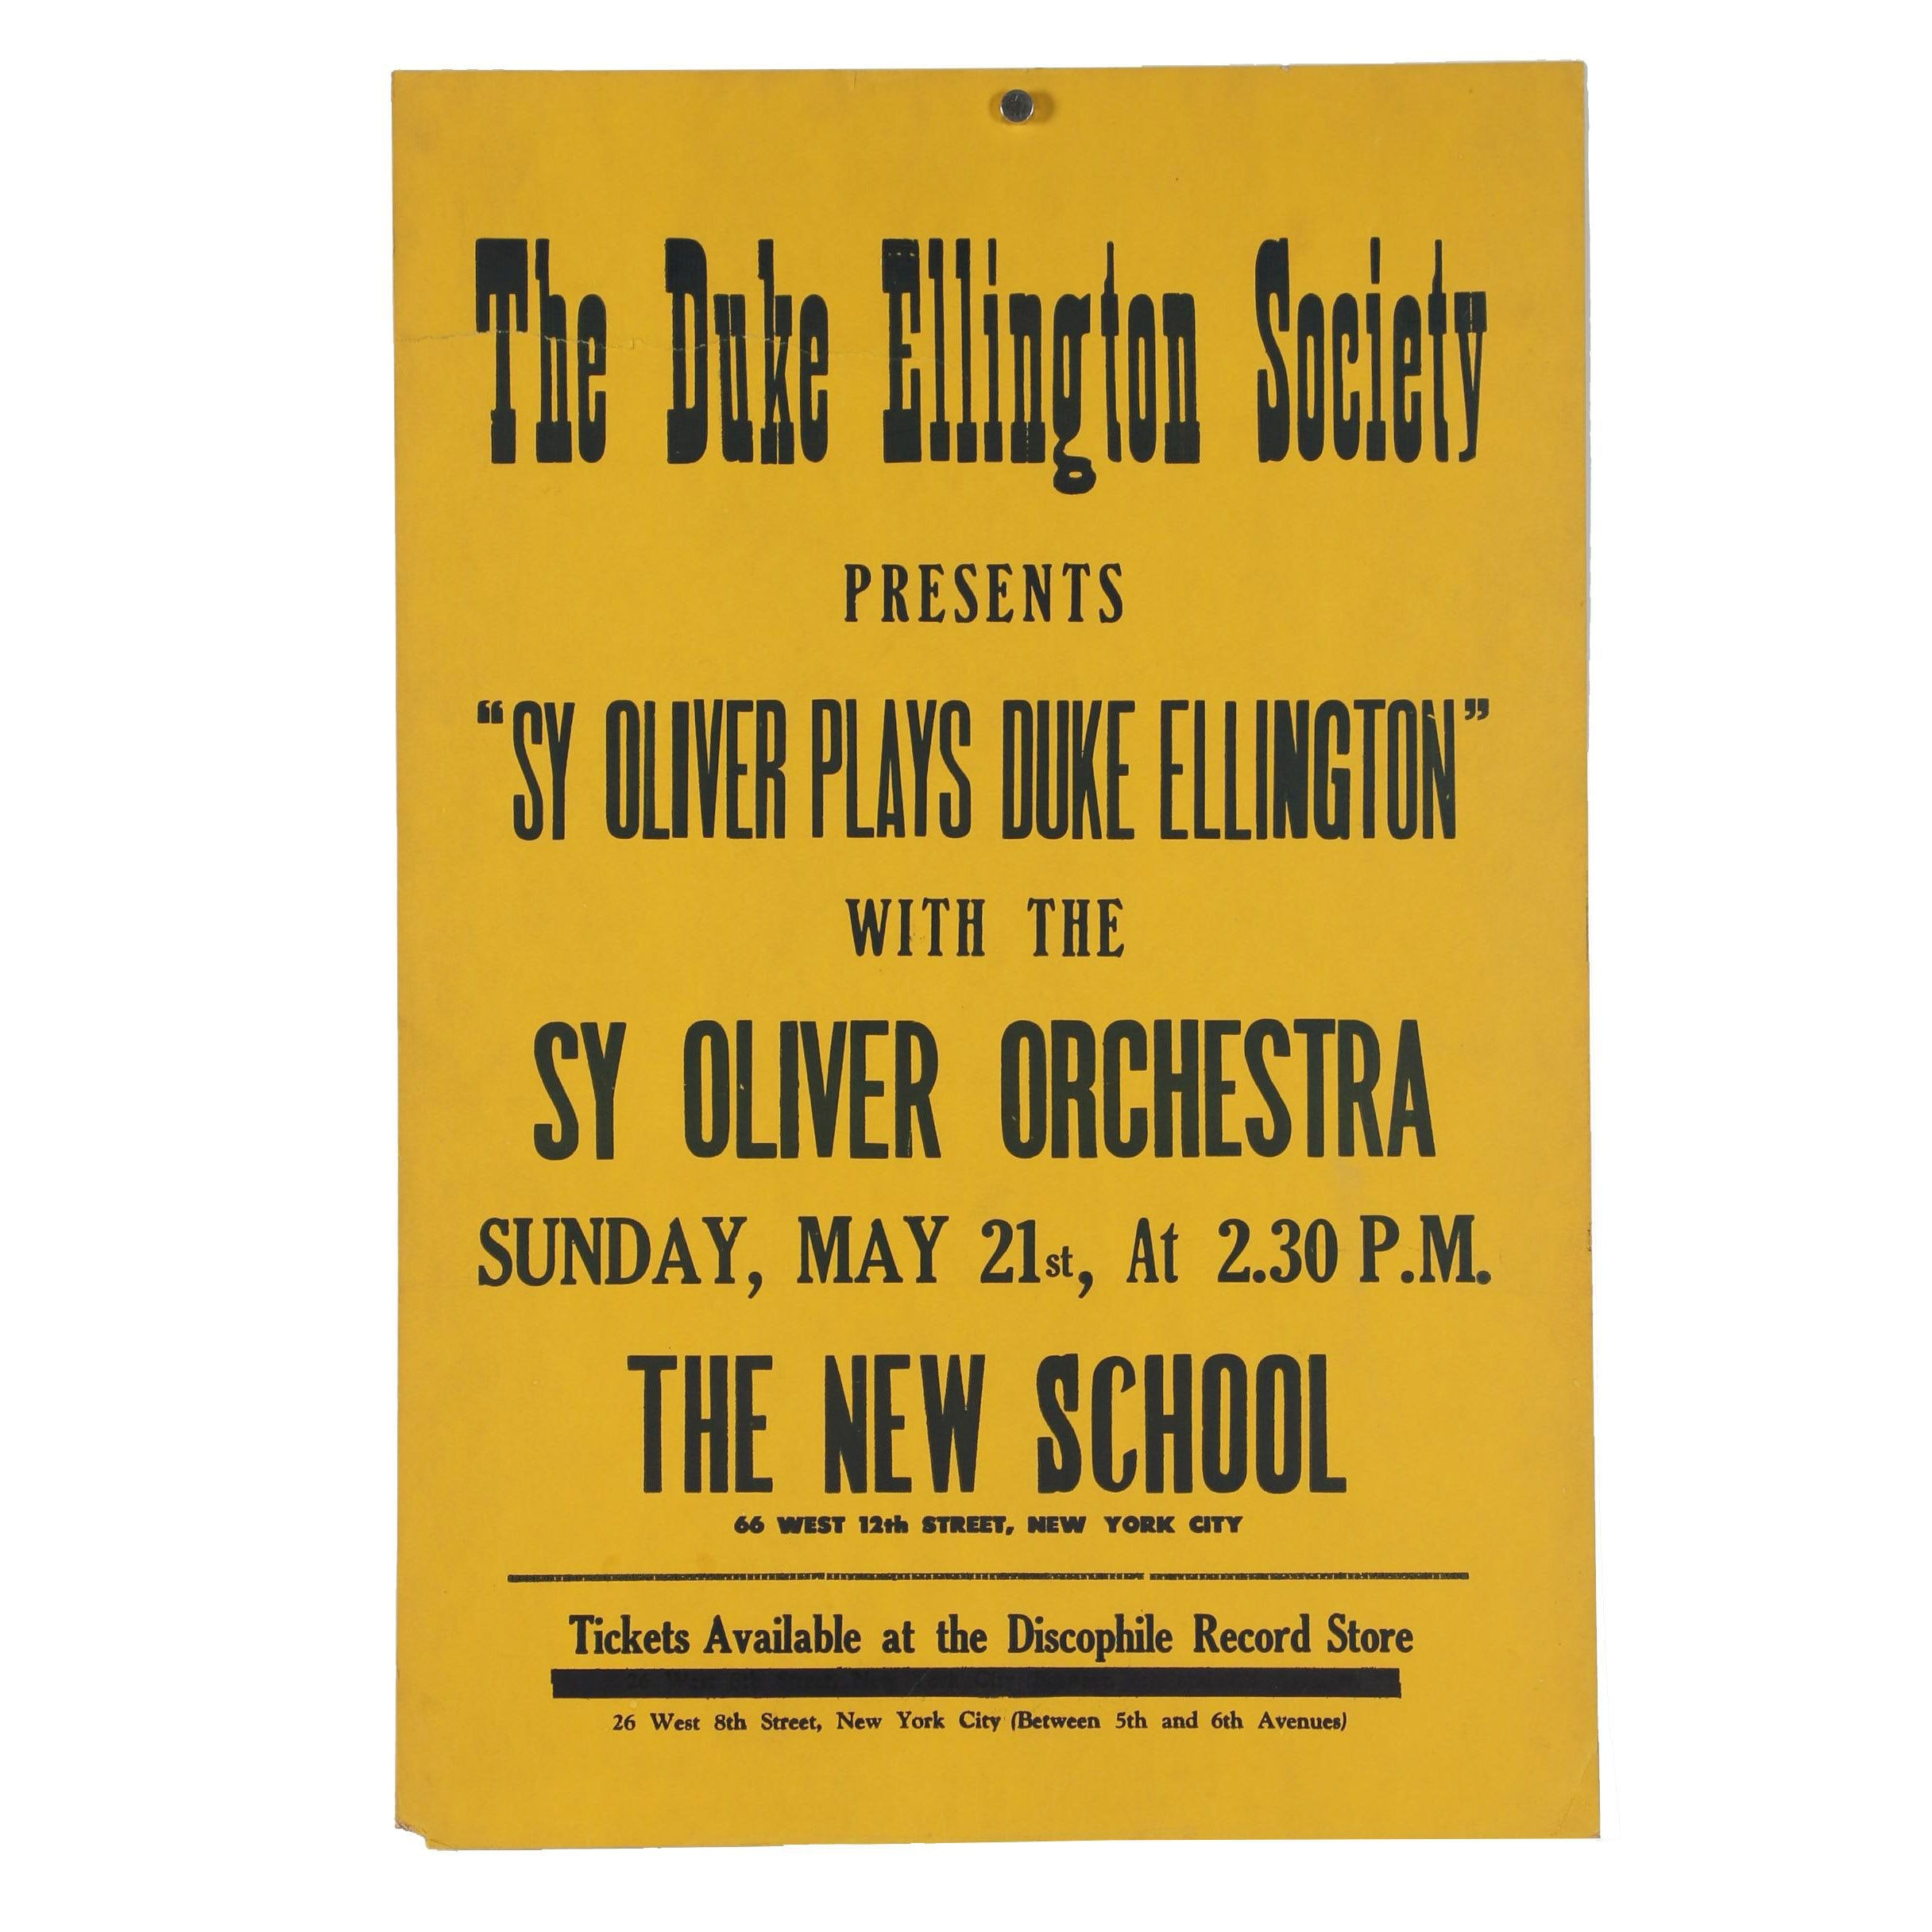 1972 Sy Oliver Orchestra Concert Poster